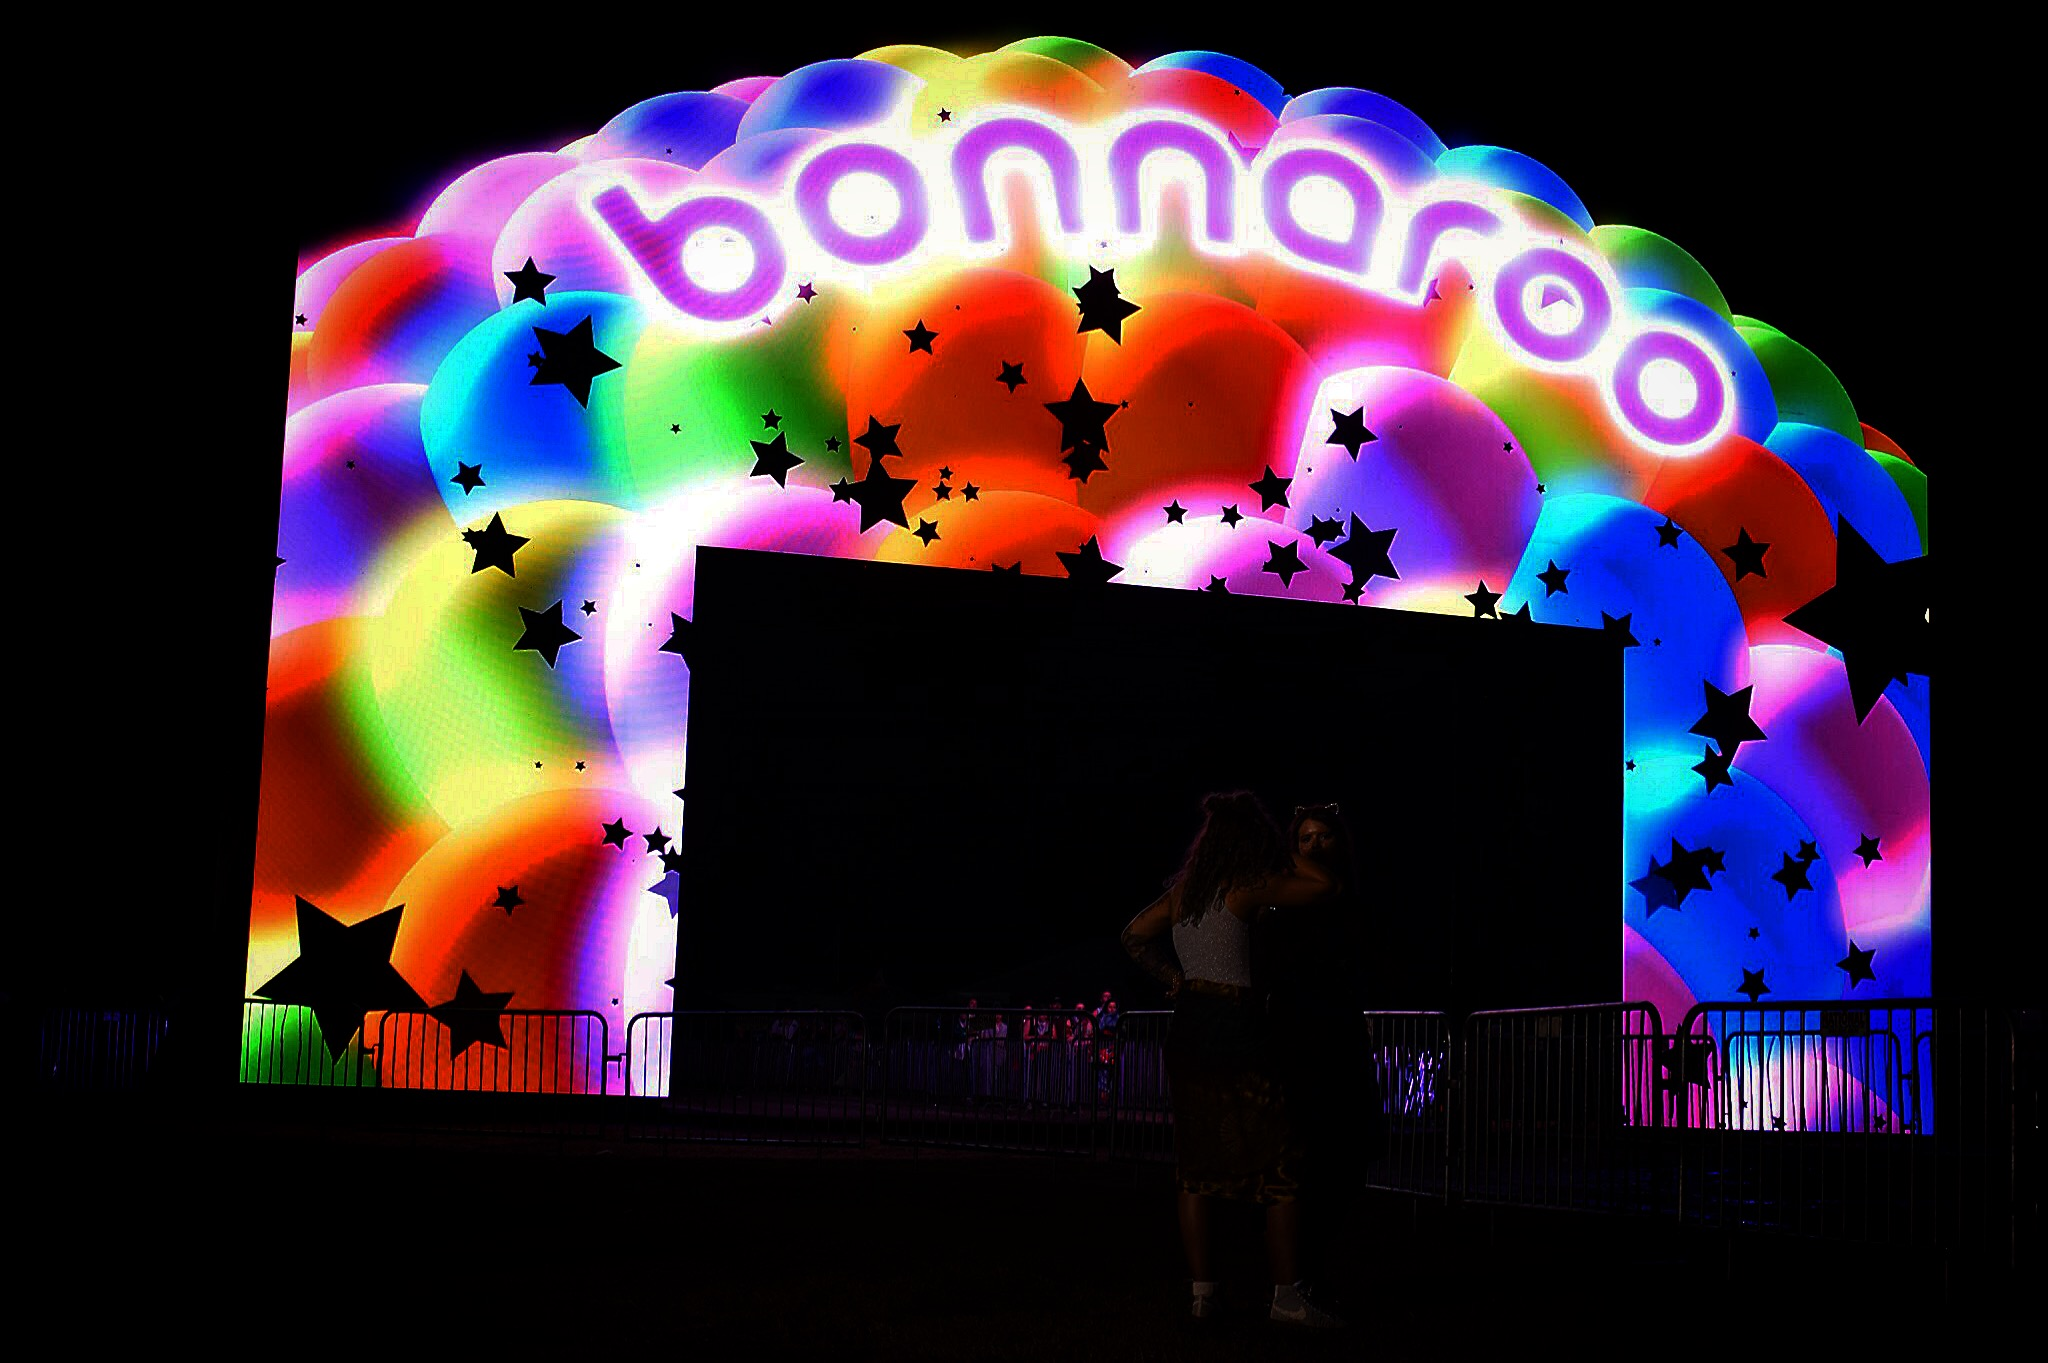 Bonnaroo Arch 2019 for East of 8th